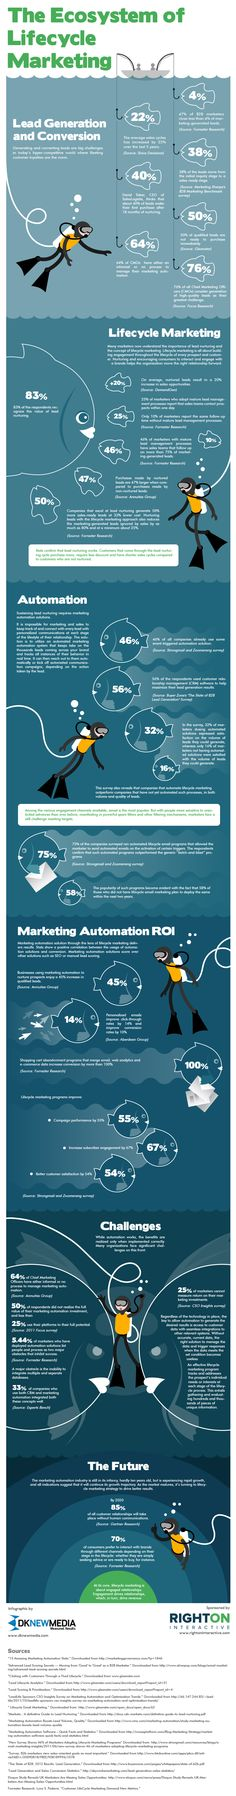 Marketing lifecycle infographic from DK New Media & Right On Interactive